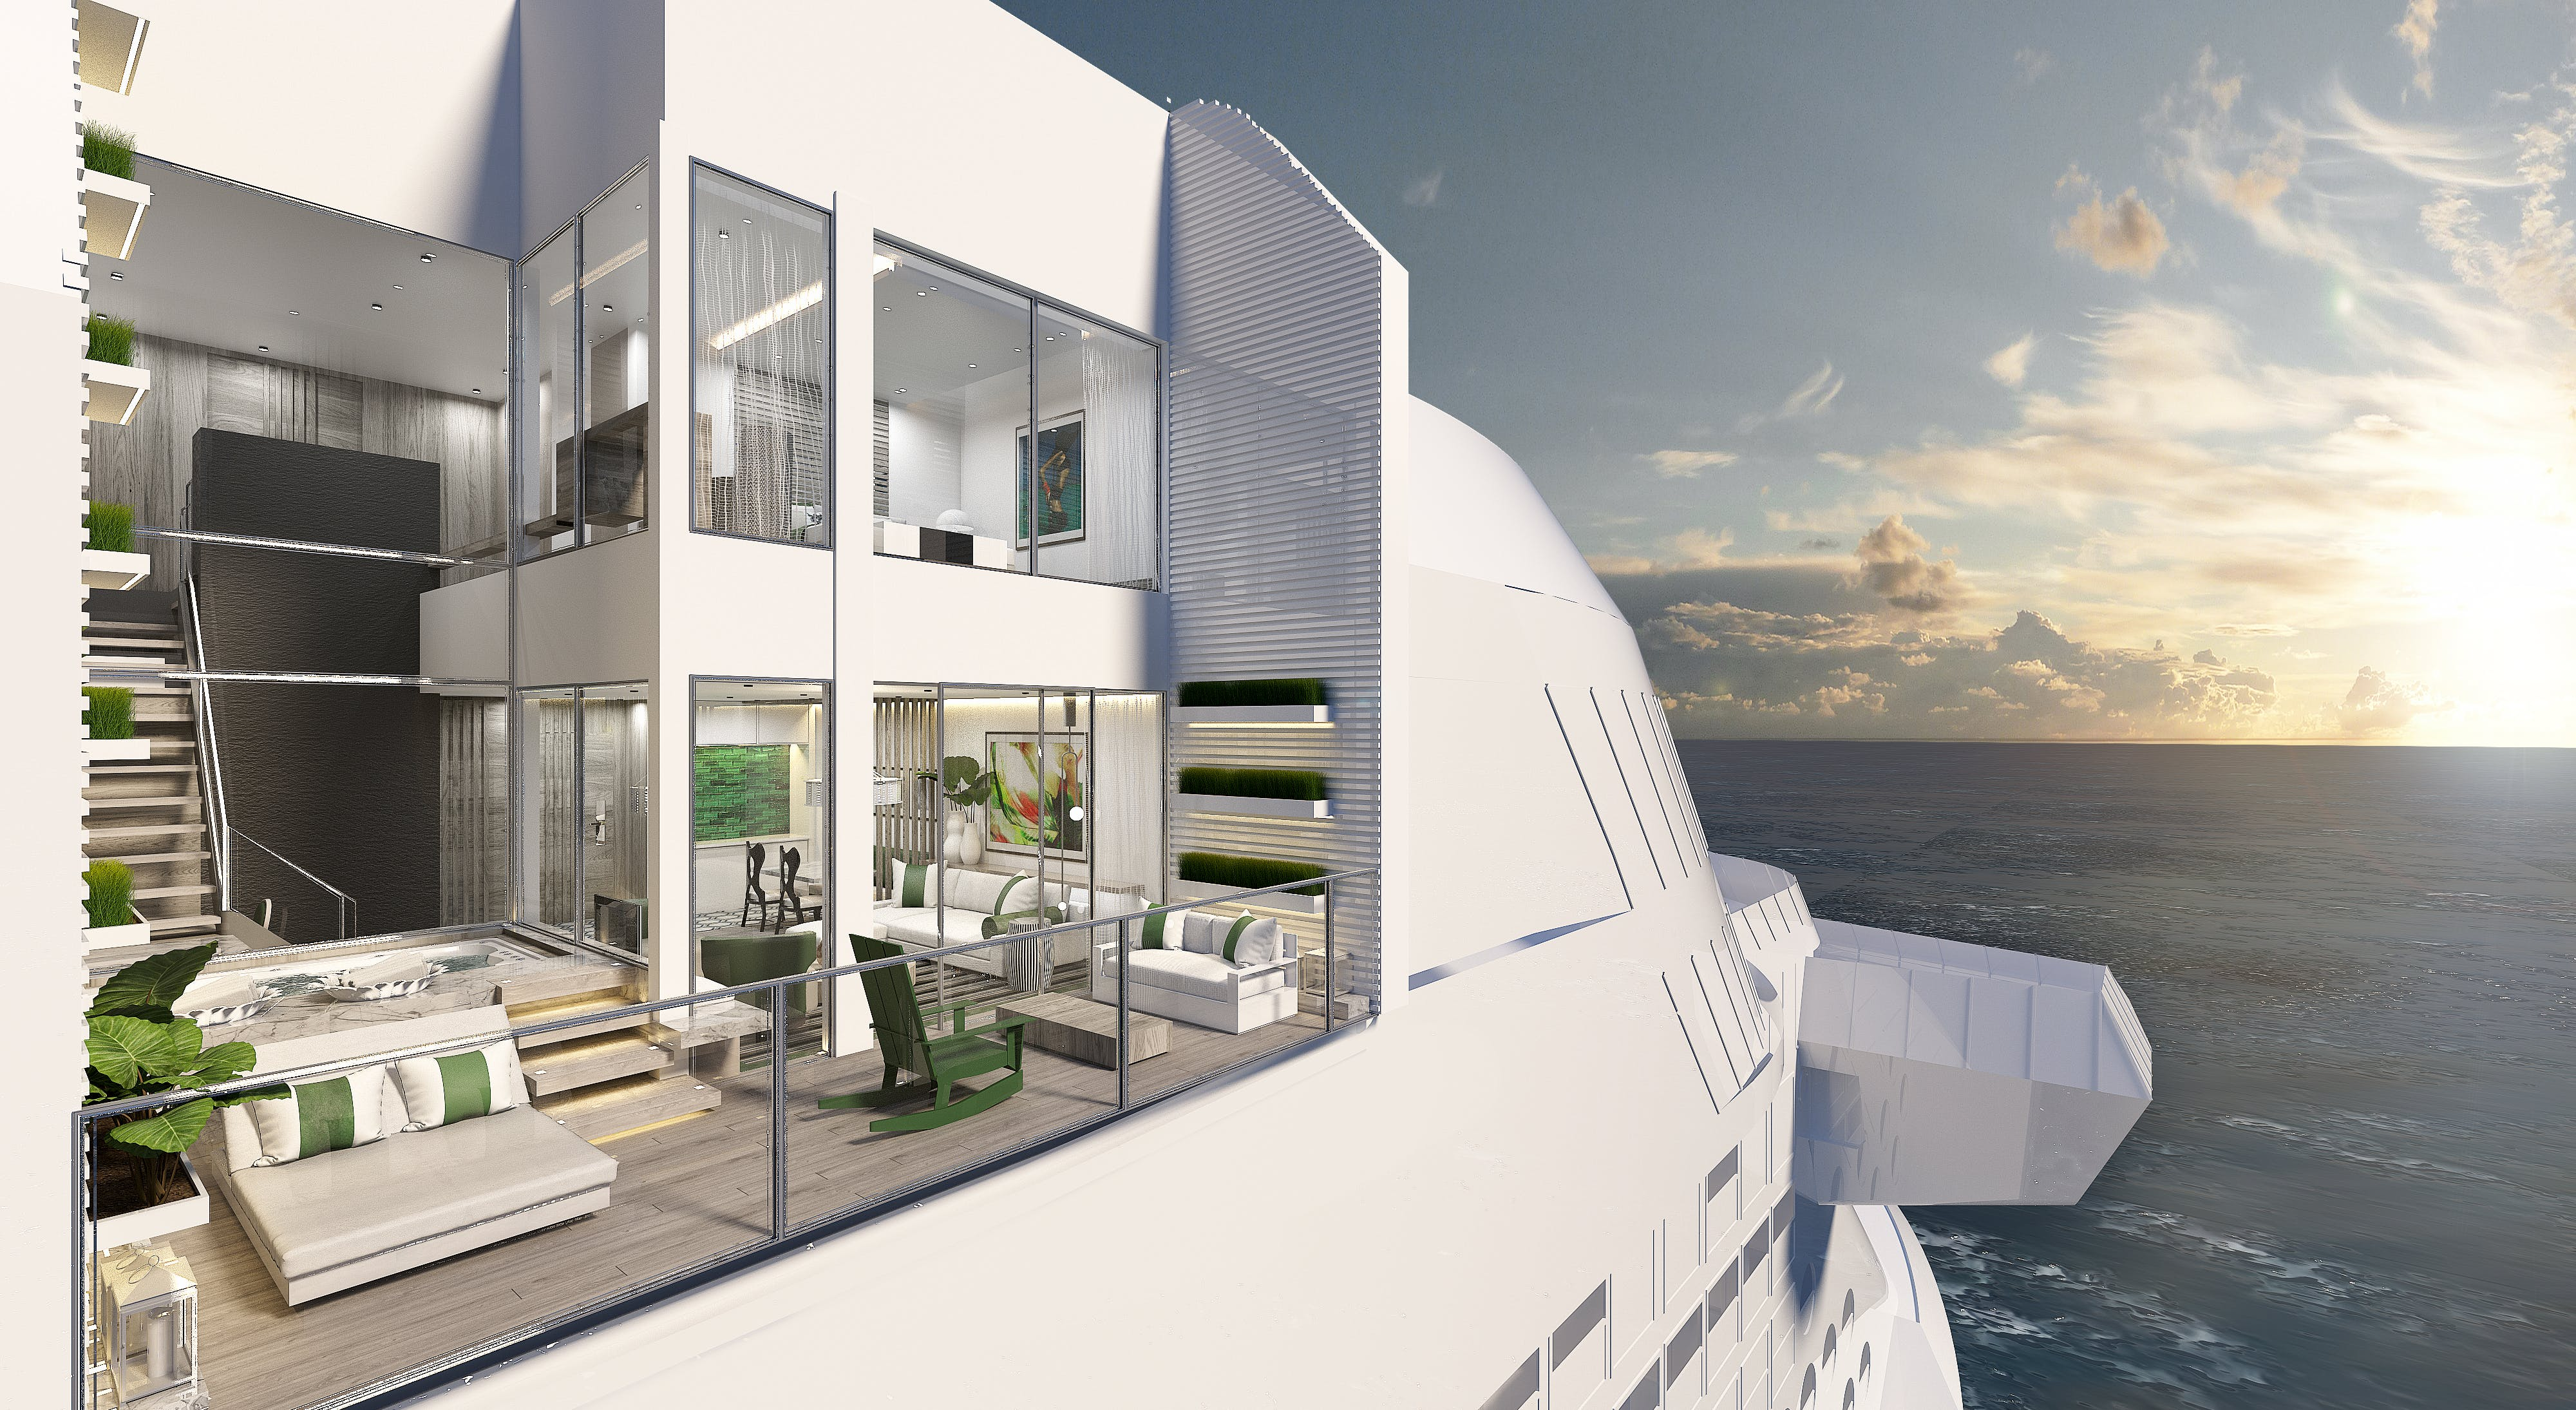 Introducing Celebrity's Newest Ship, Celebrity Edge